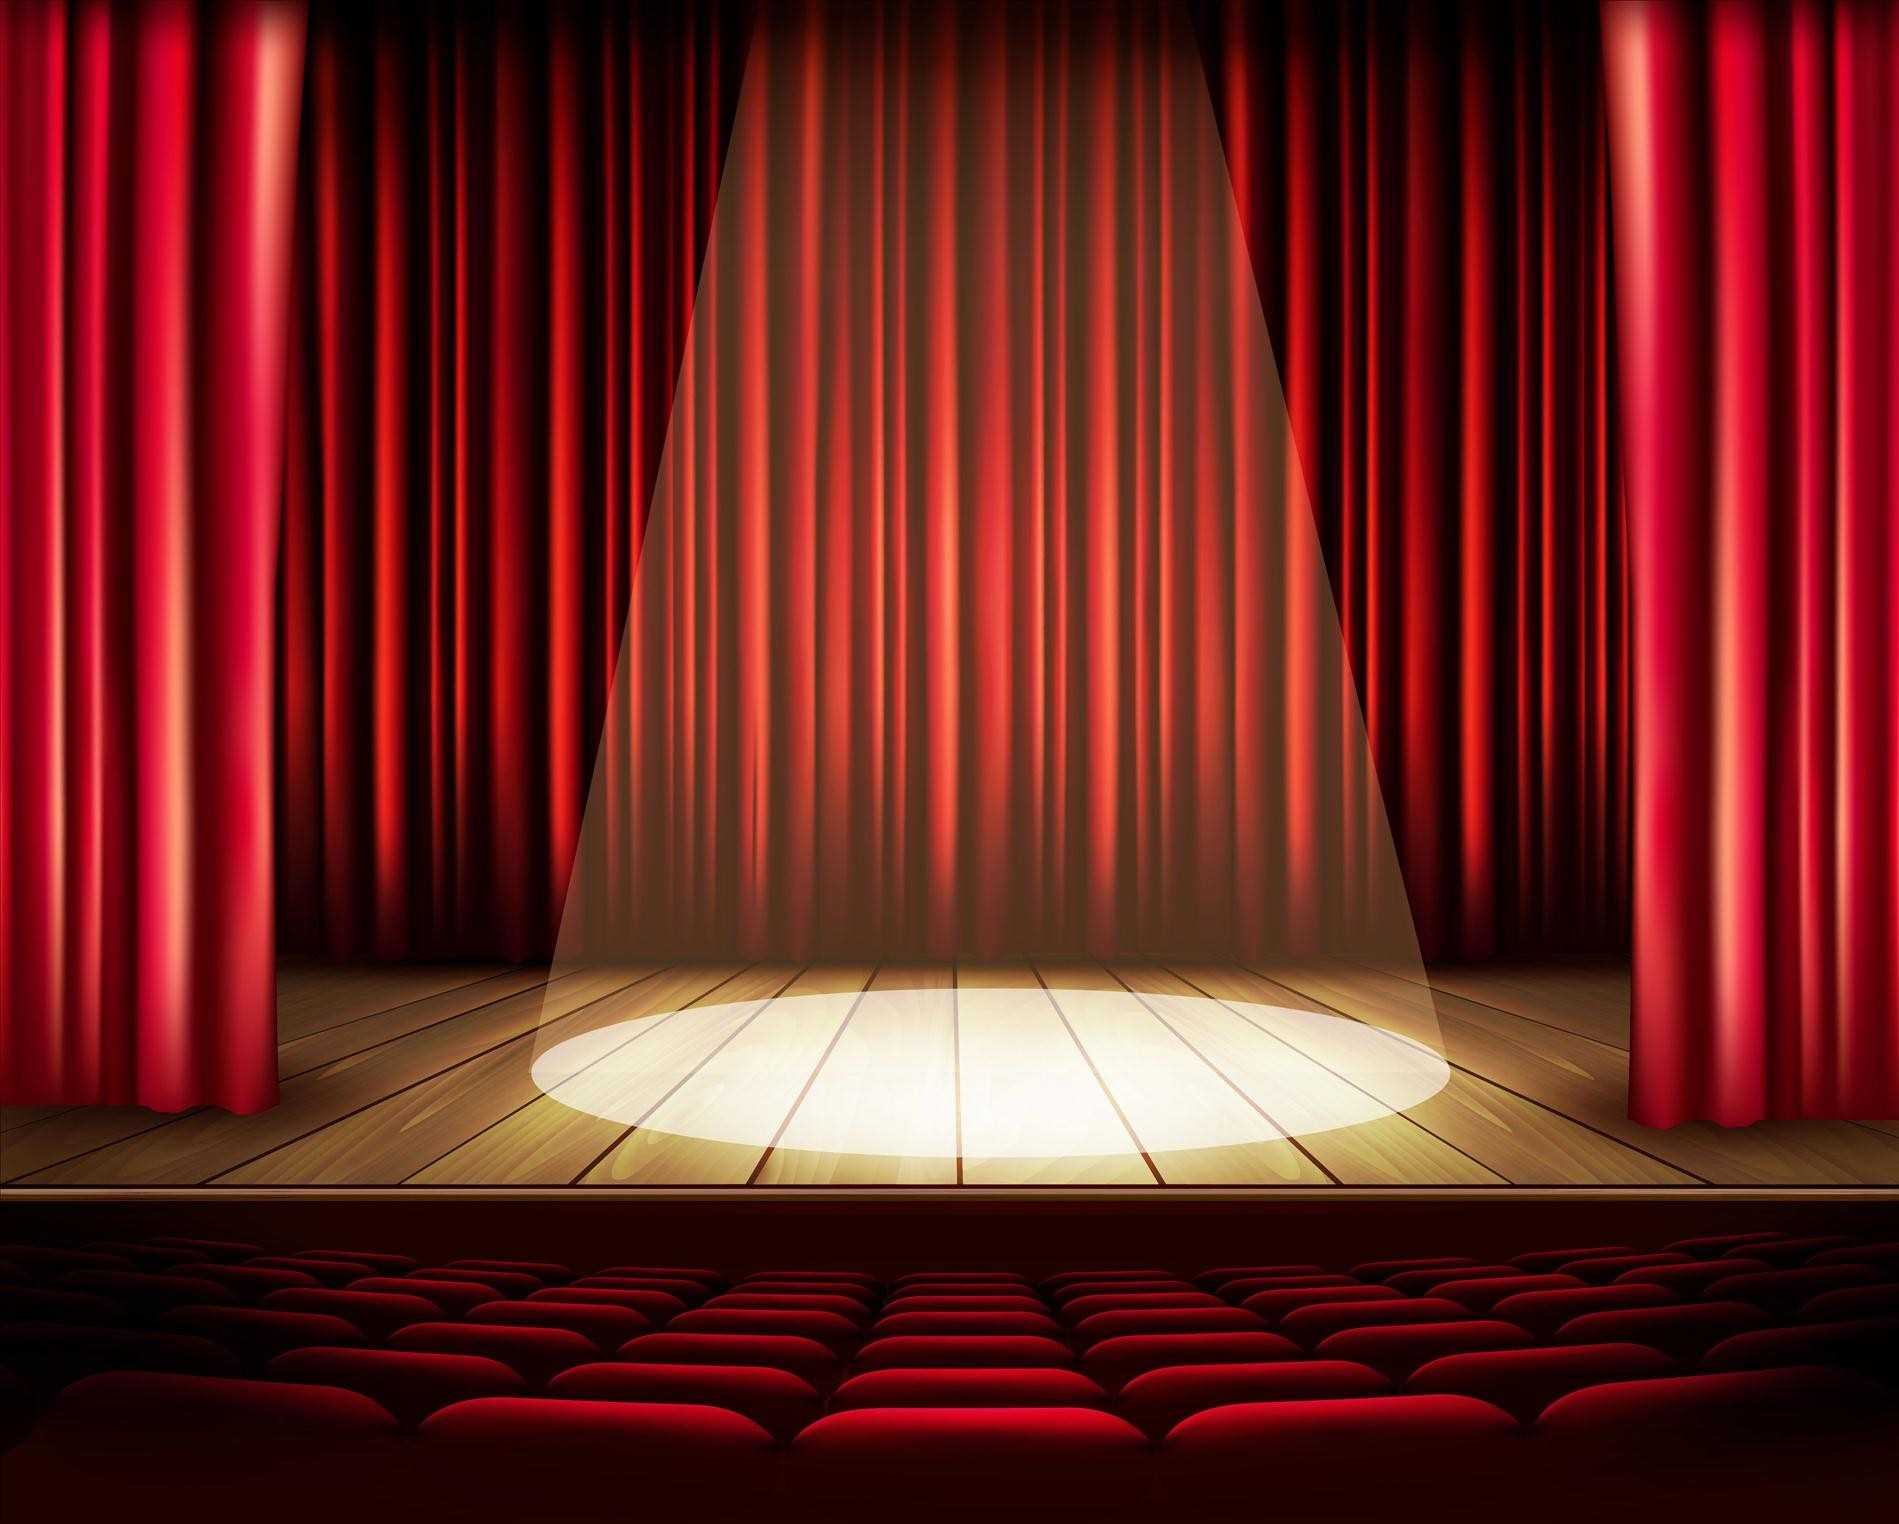 1899x1524 Background Red Stage Red Curtain Seats Photo Stock Vector